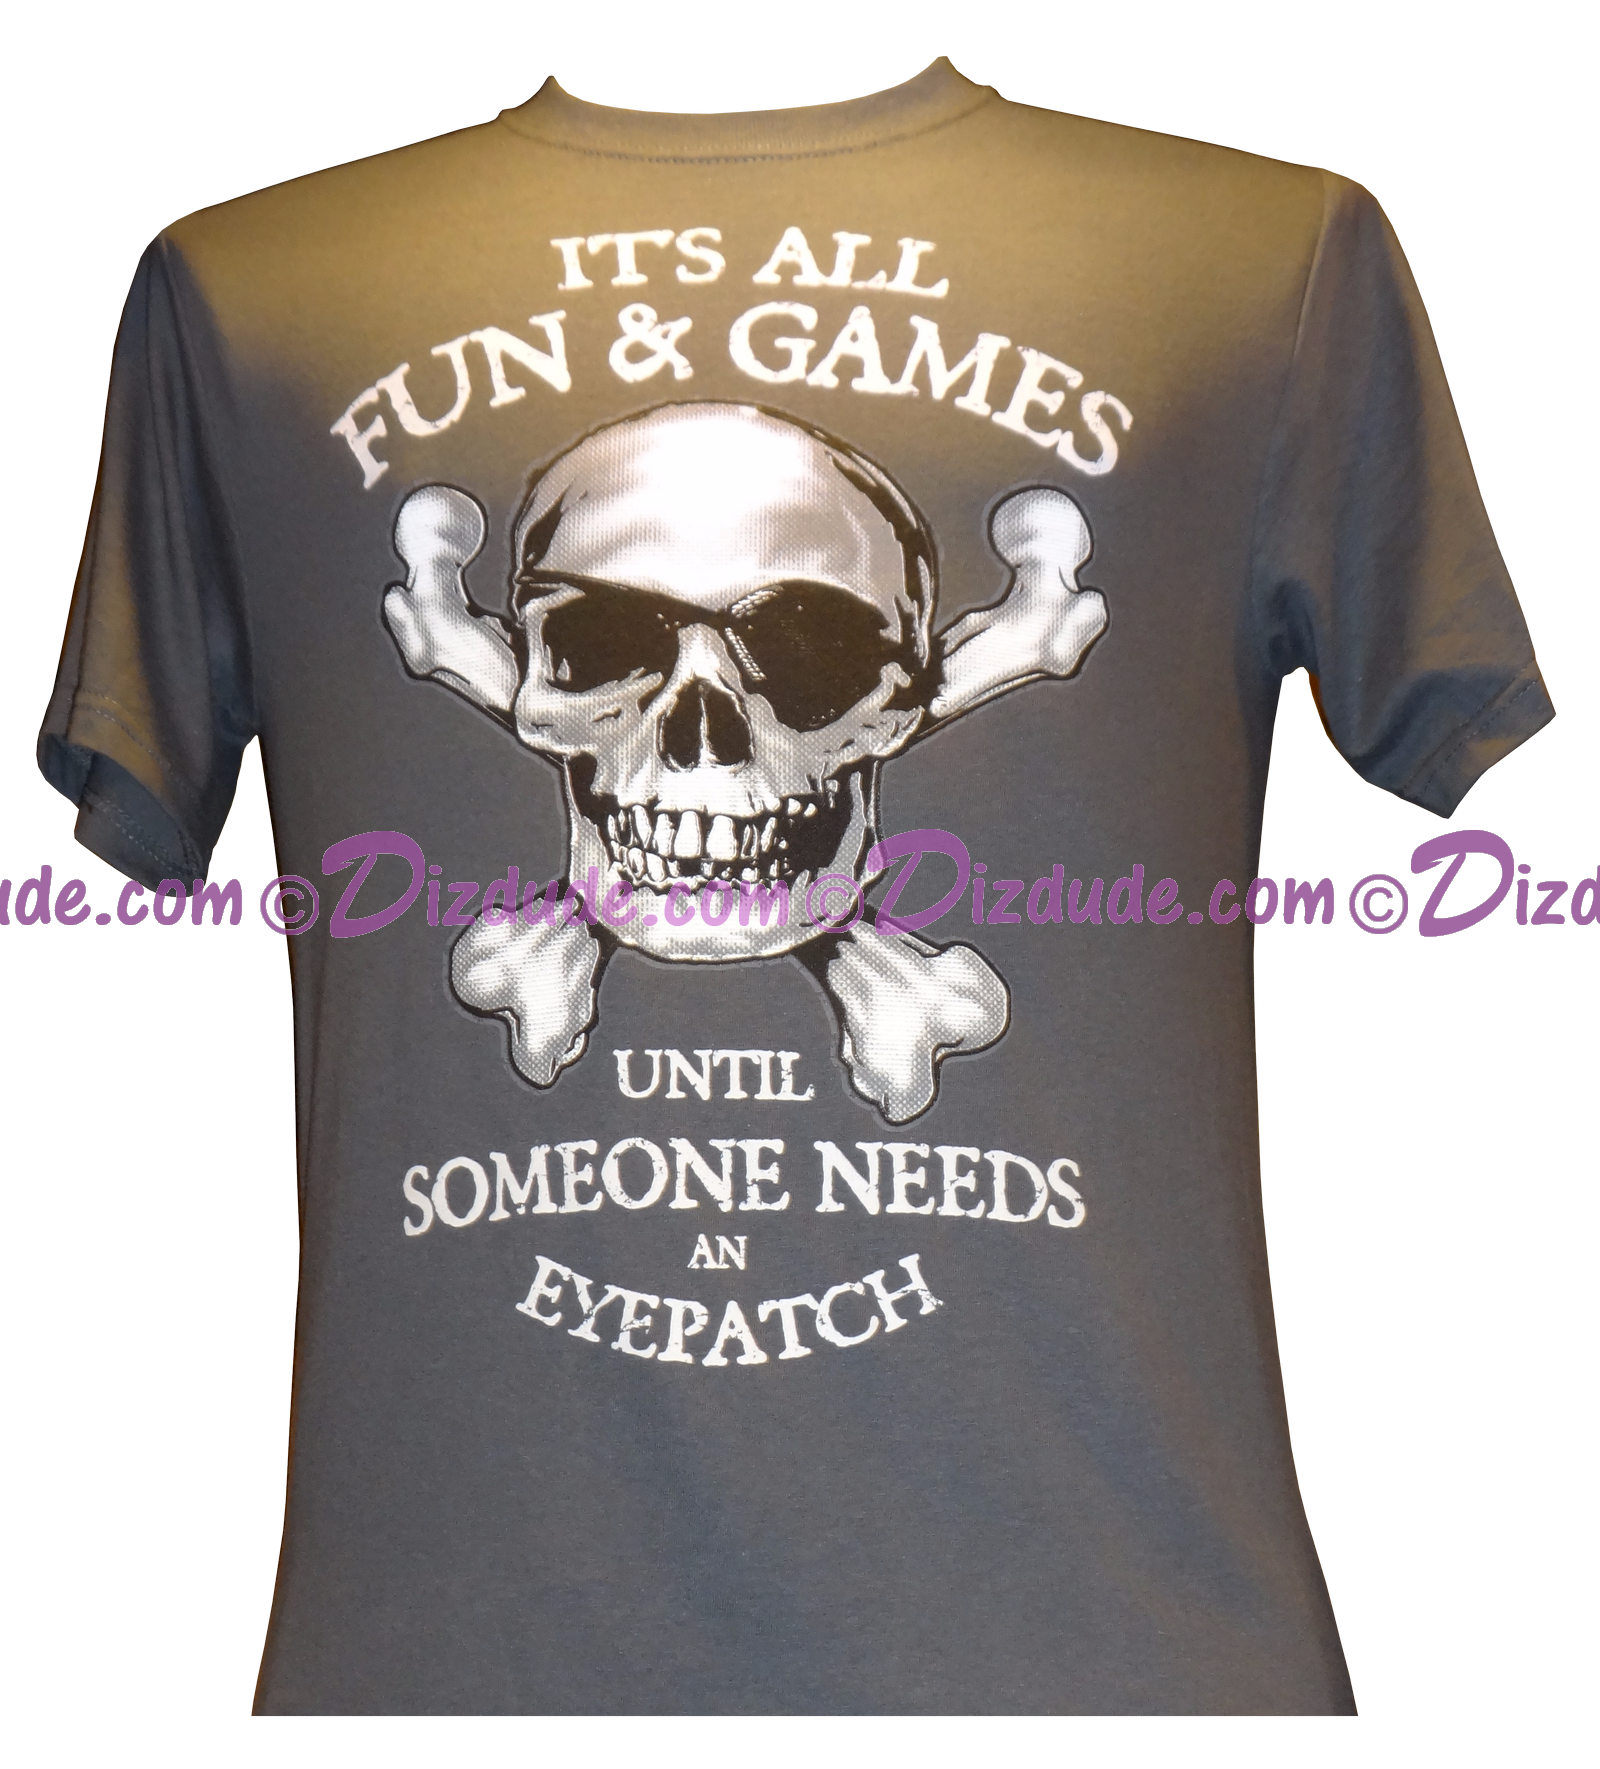 Vintage Pirates of the Caribbean Its All Fun & Games ... Until Someone Needs An Eyepatch T-shirt (Tee, Tshirt or T shirt)